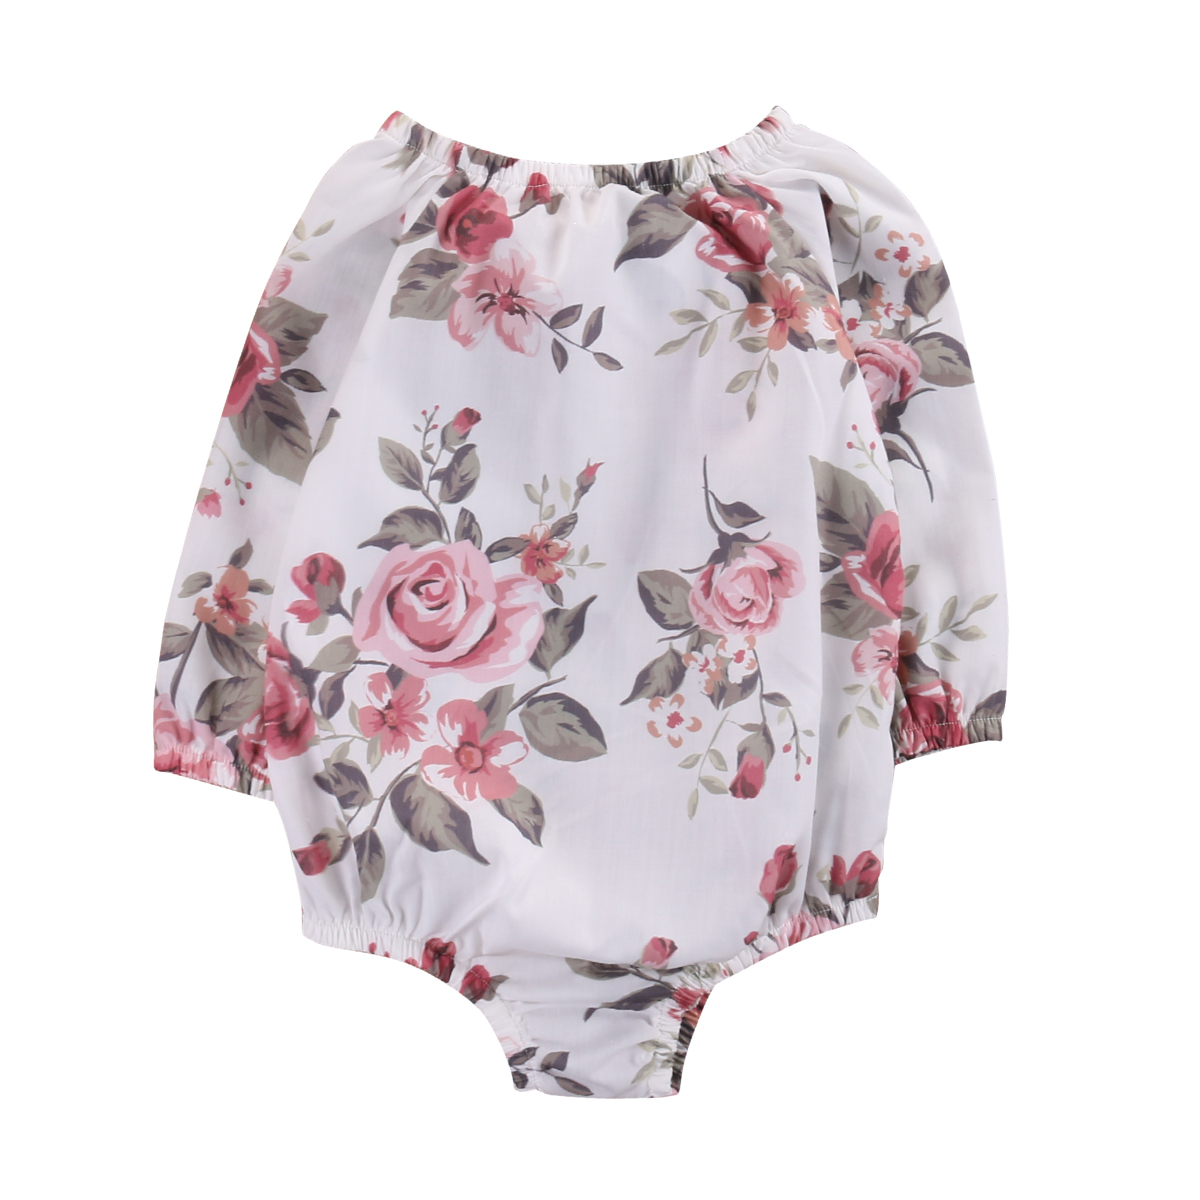 d5b74270c3d Floral Long Sleeve Infant Baby Girl Romper Jumpsuit Newborn Baby Romper  Little Kids Girls Clothing Cotton Outfit 0 18m-in Rompers from Mother    Kids on ...